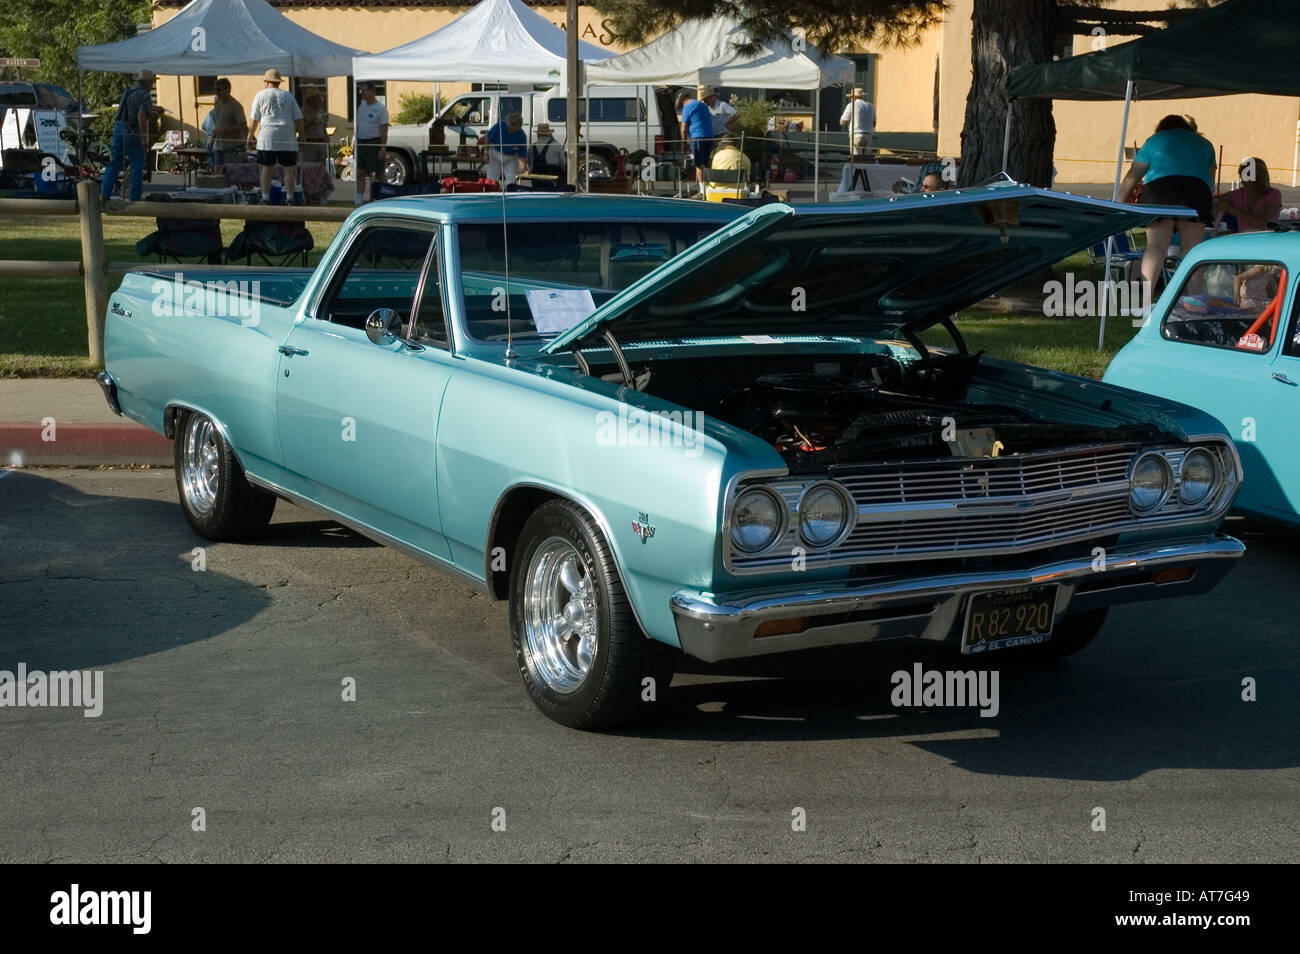 hight resolution of los angeles california car show antique customized 65 1965 chevy chevrolet el camino pickup truck